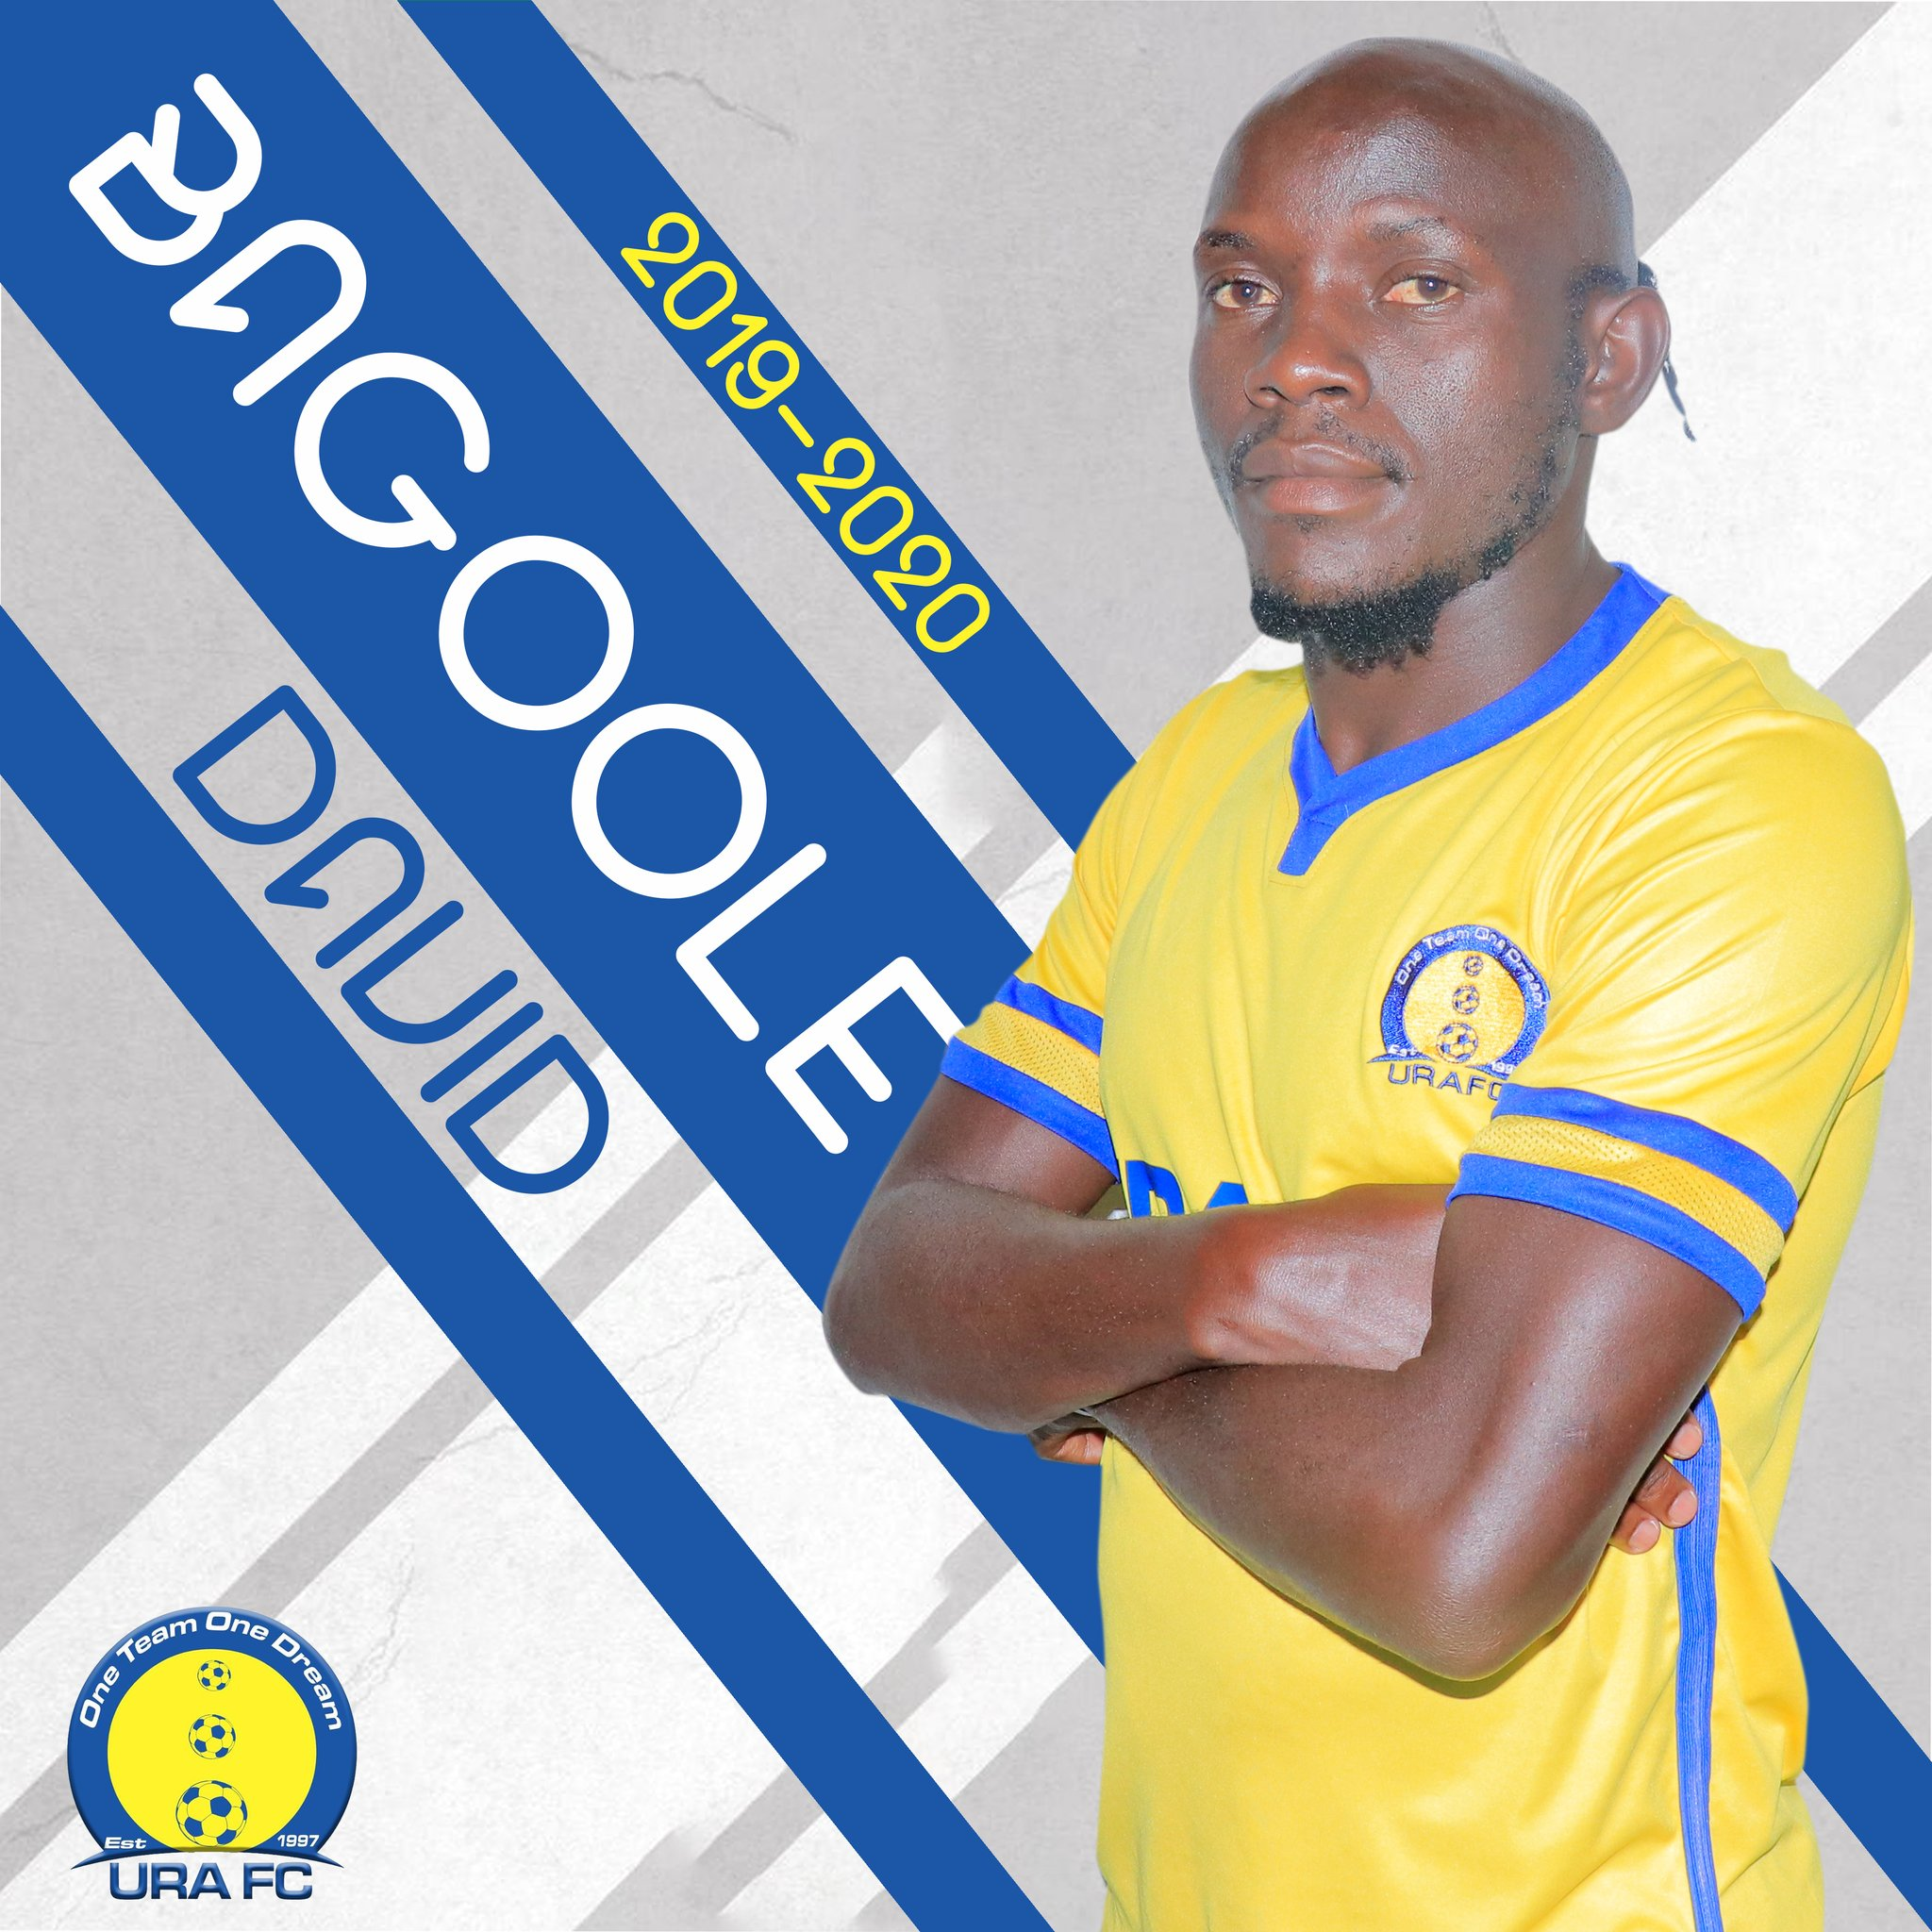 David Bagoole is one of the new faces brought in by URA FC in the offseason.